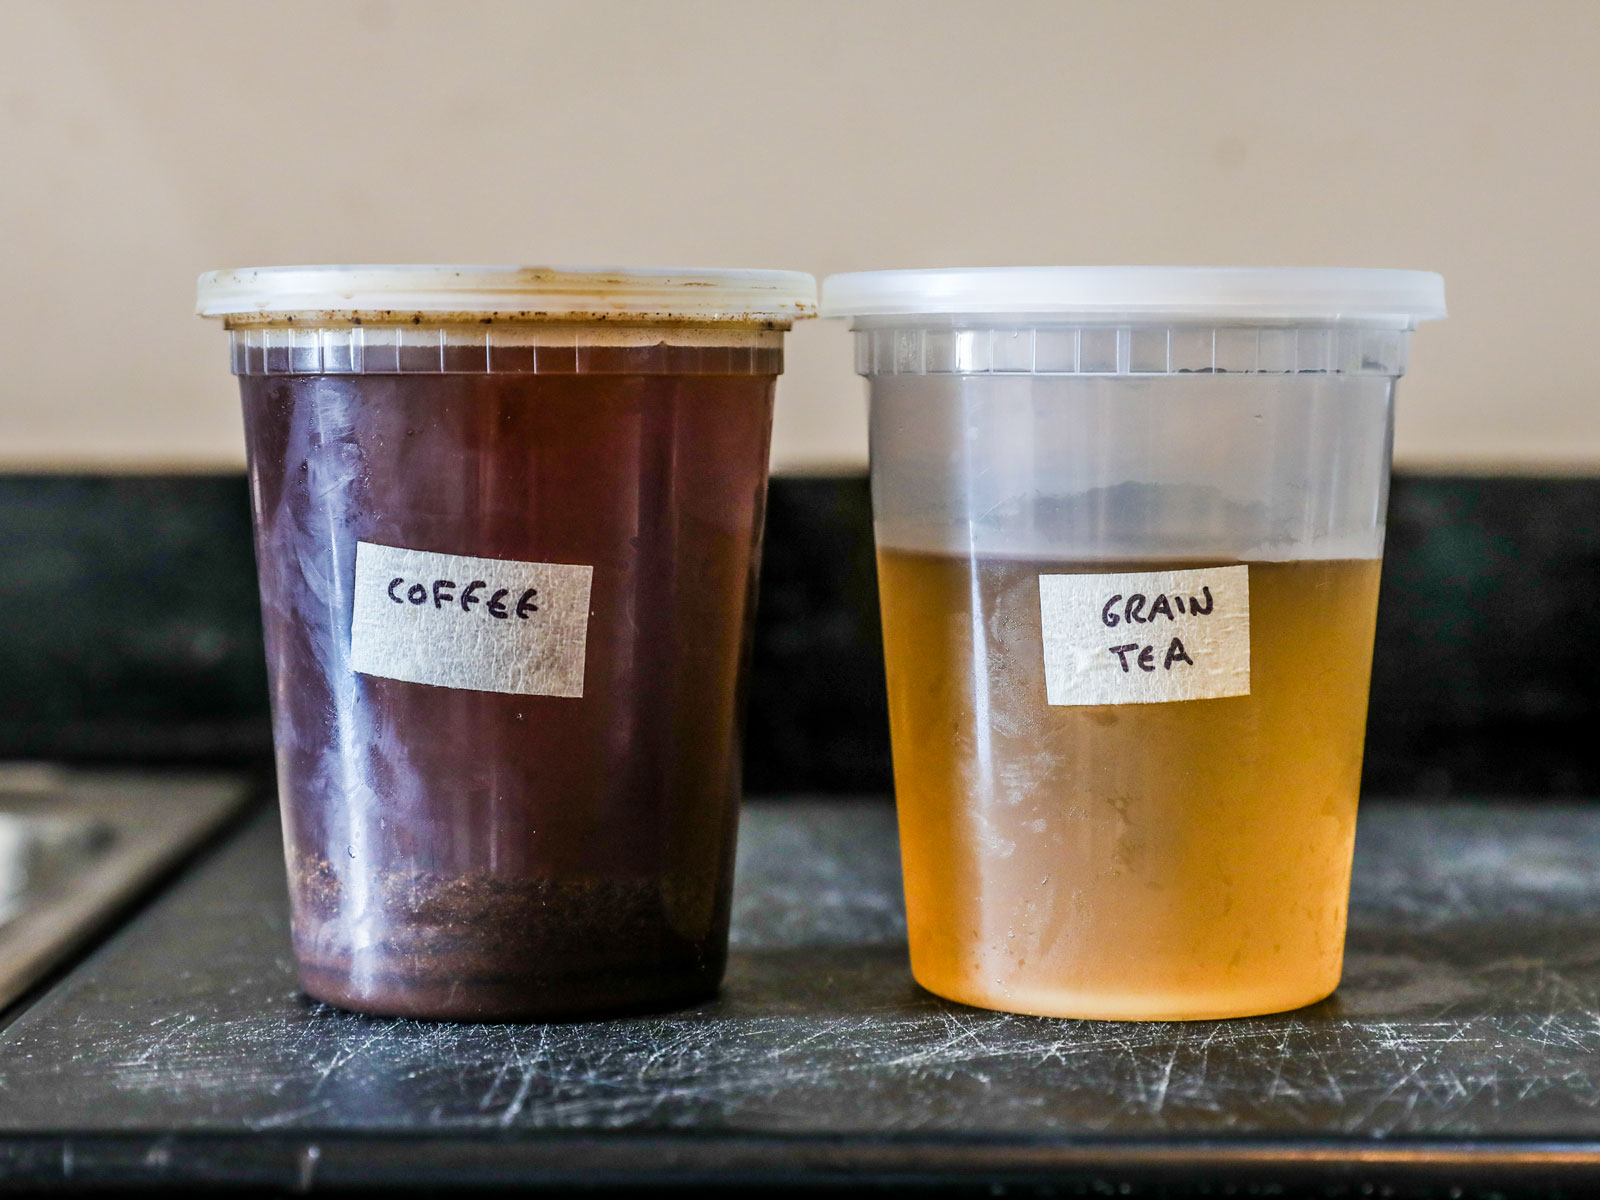 Store Coffee and Tea in Containers